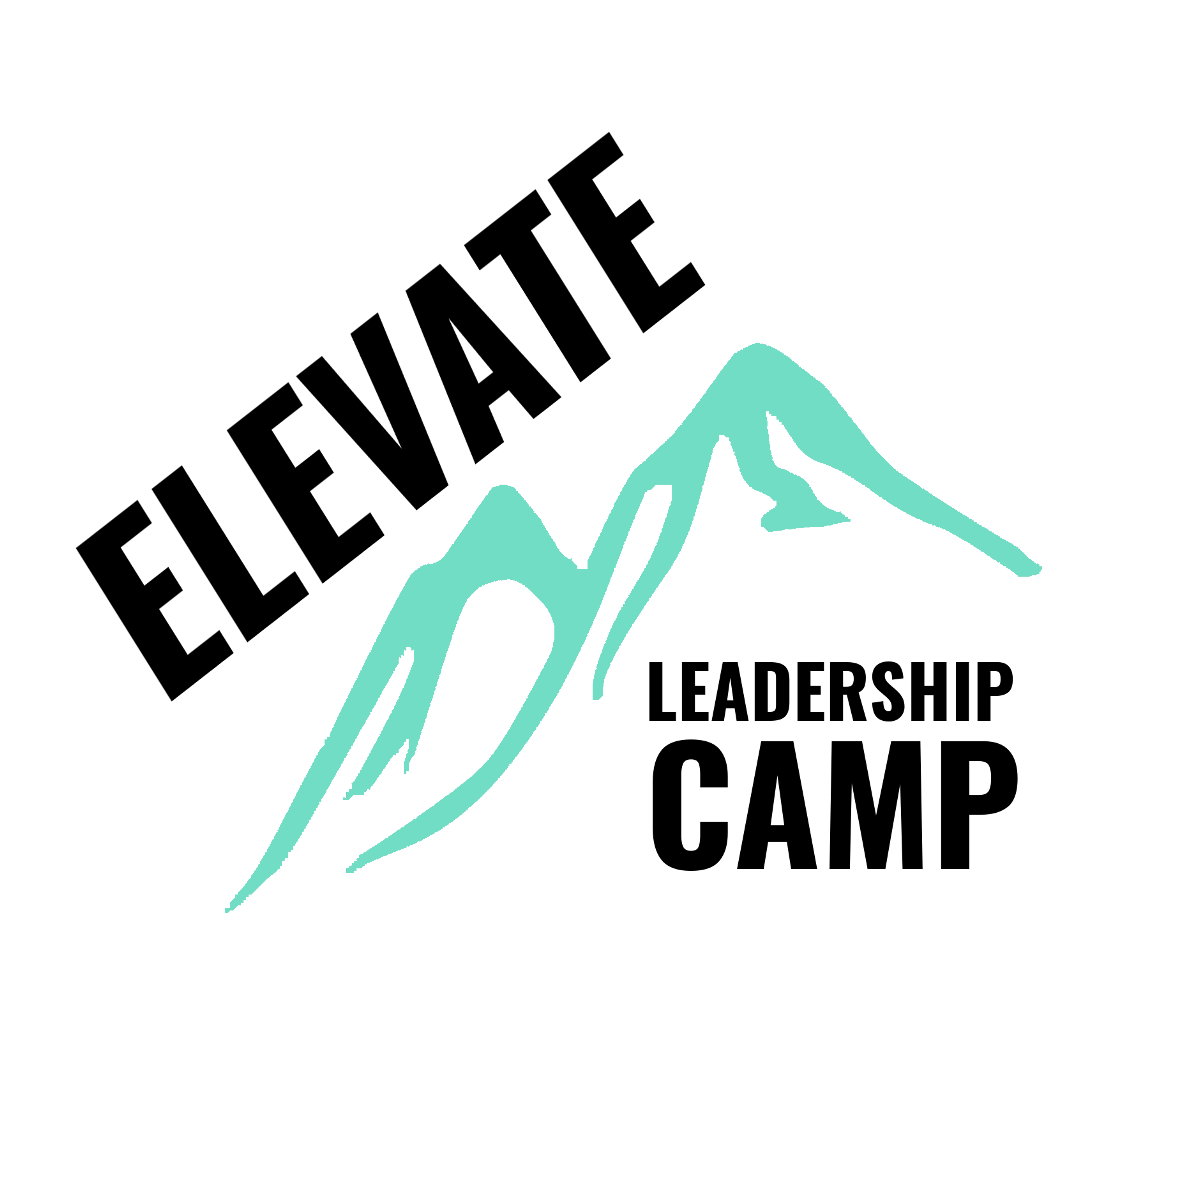 elevate leadership camp logo with camp name and mountains